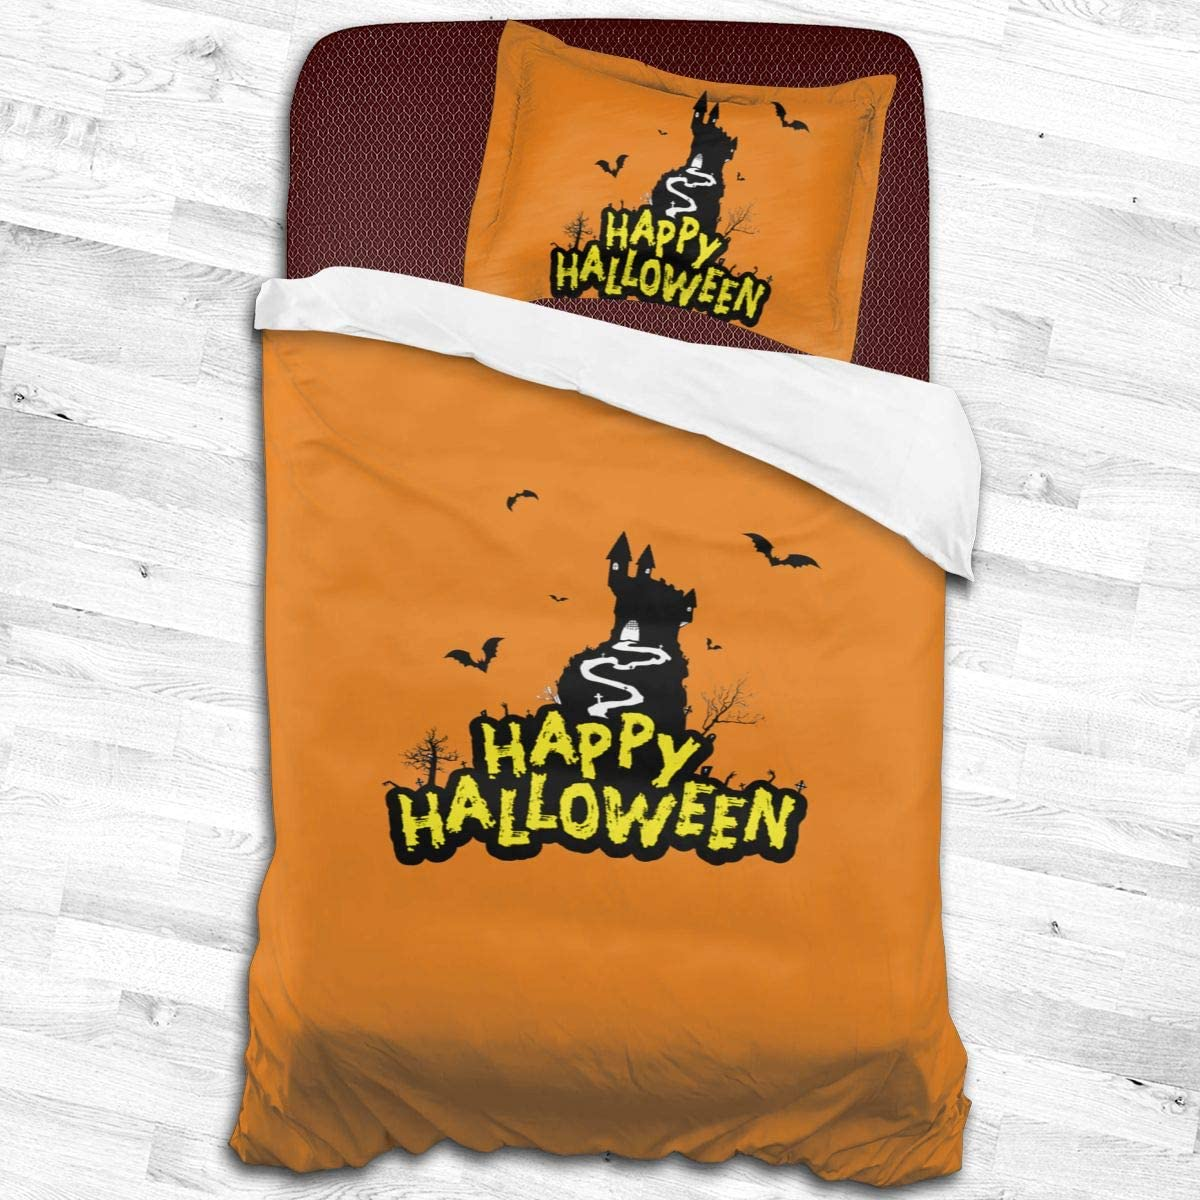 Qwtywqekeertyi Halloween Cotton Student Dormitory Quilt Cover Two-Piece Quilt Cover for Boys and Girls On Single Beds